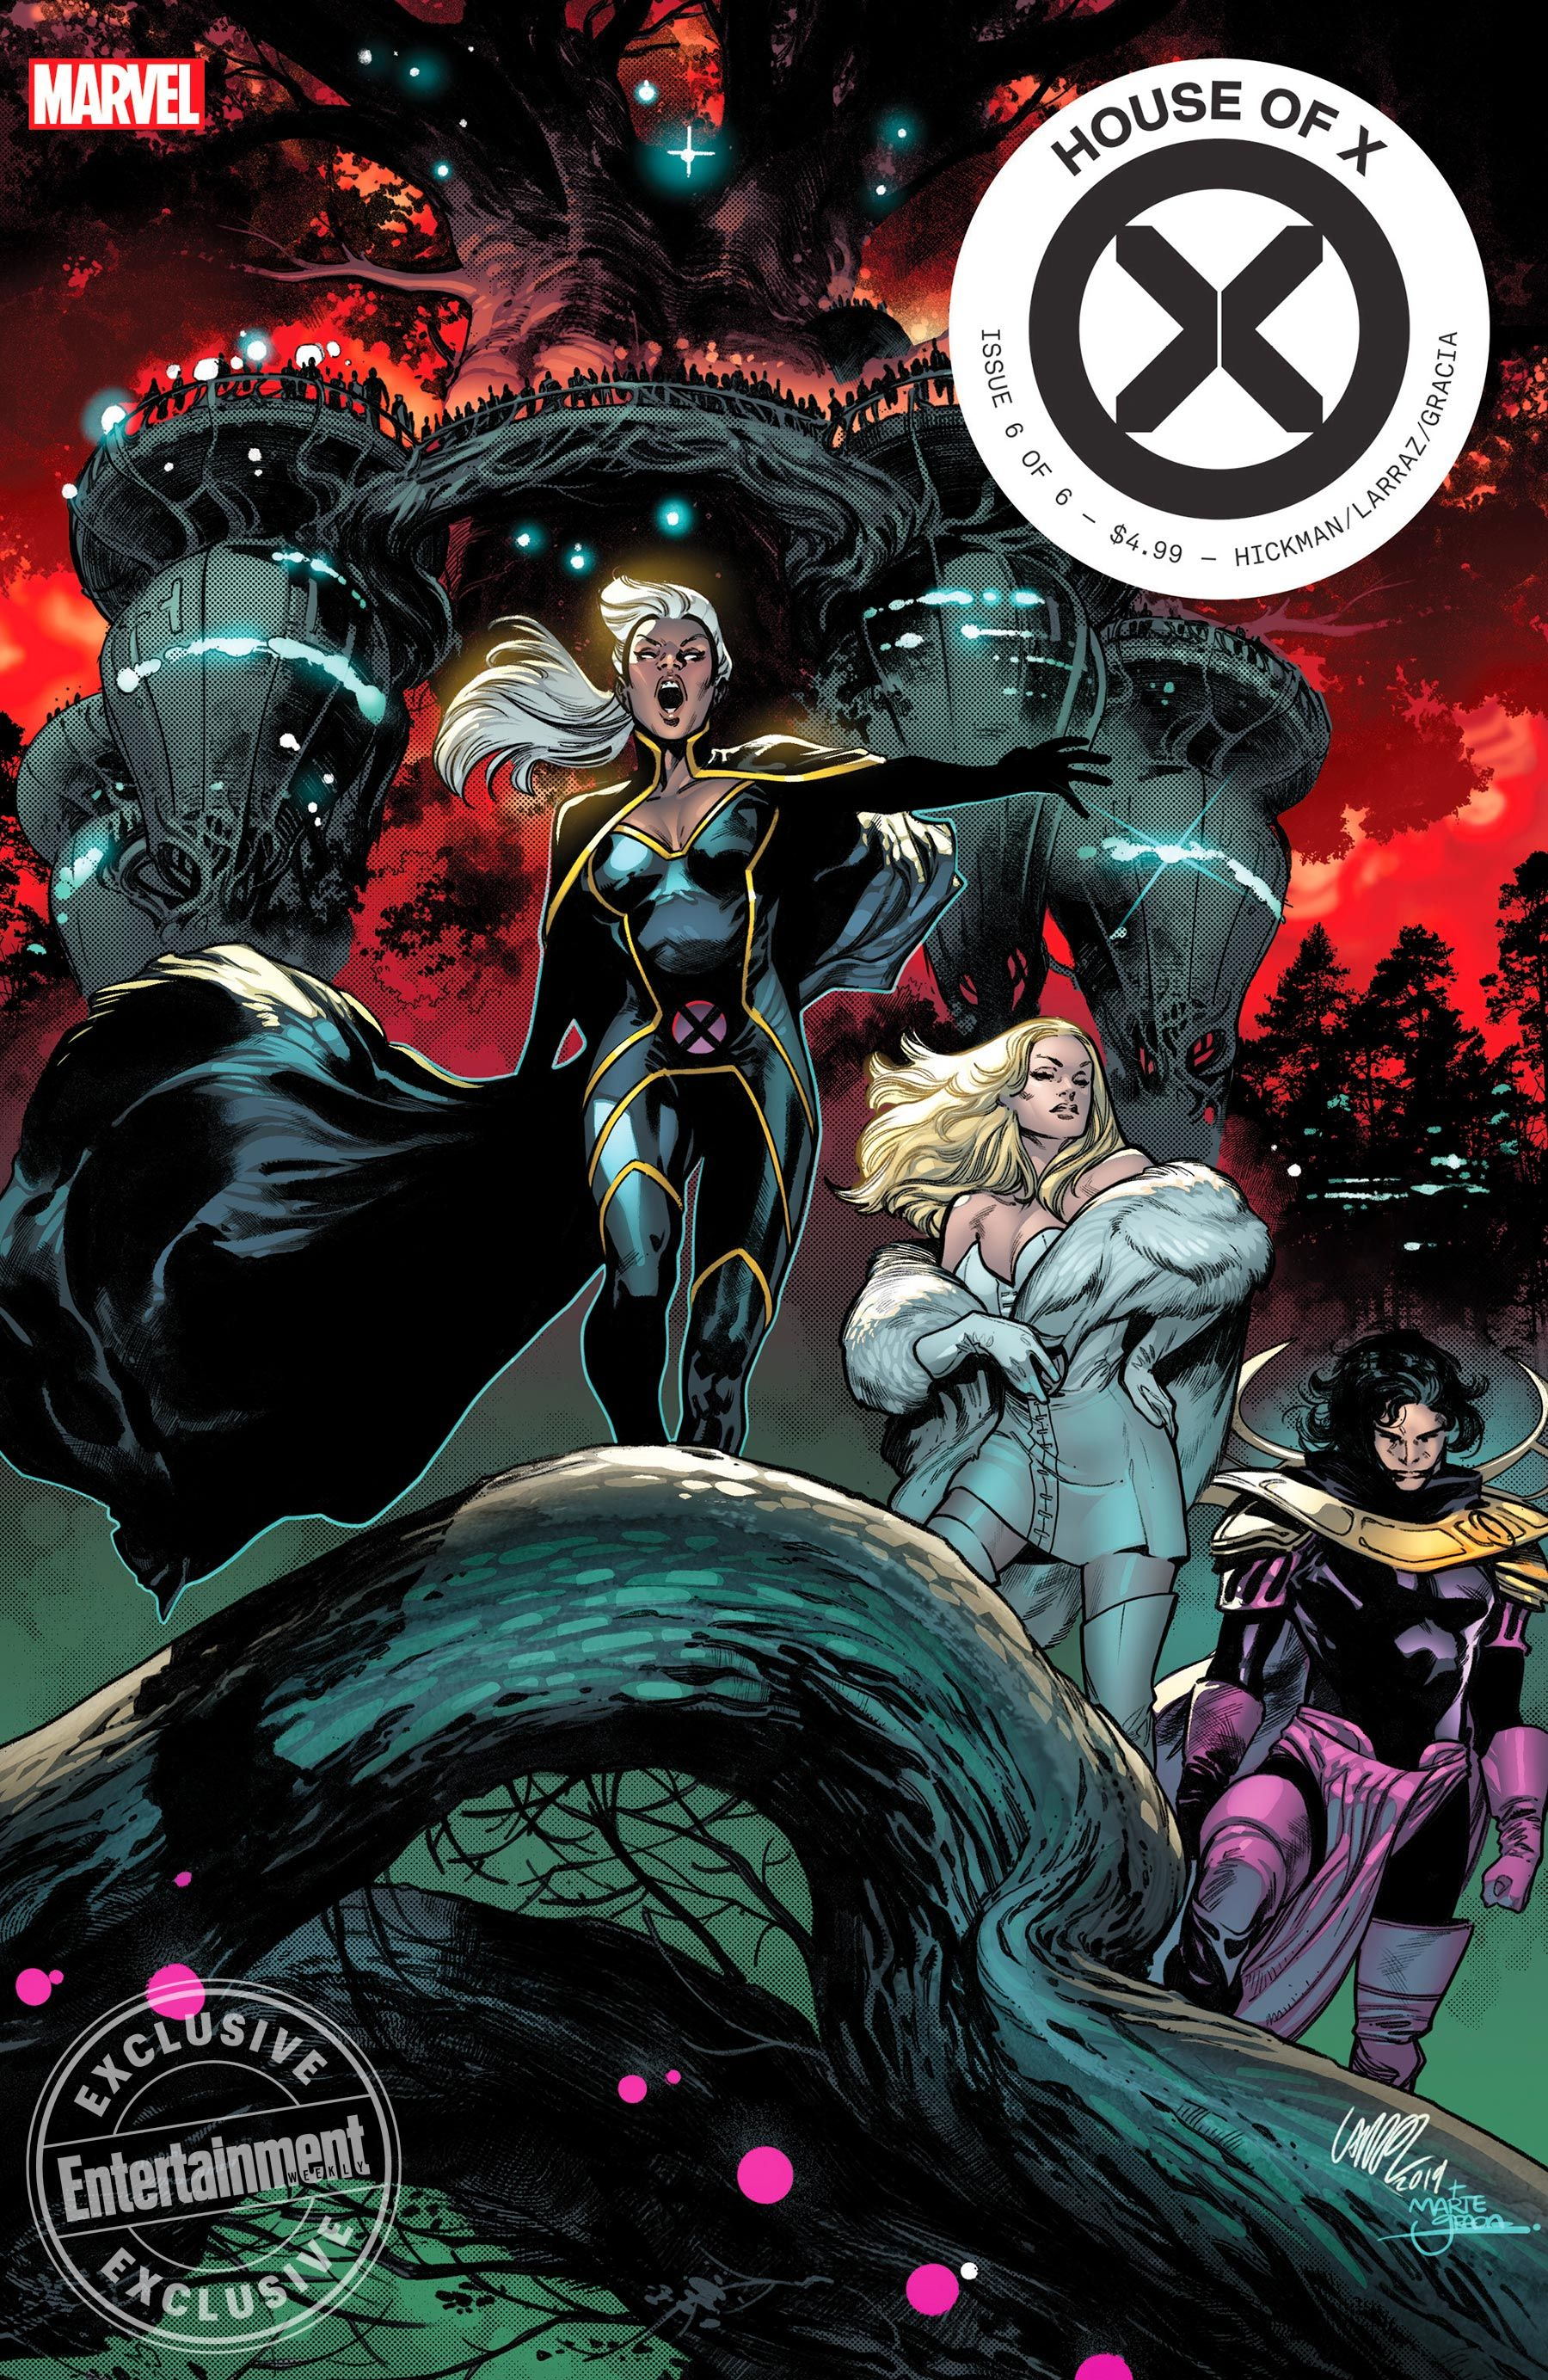 Jonathan Hickman Previews His Multiyear Plan To Reinvent Marvel S X Men Comics Marvel Comics Marvel Comics Art Comics